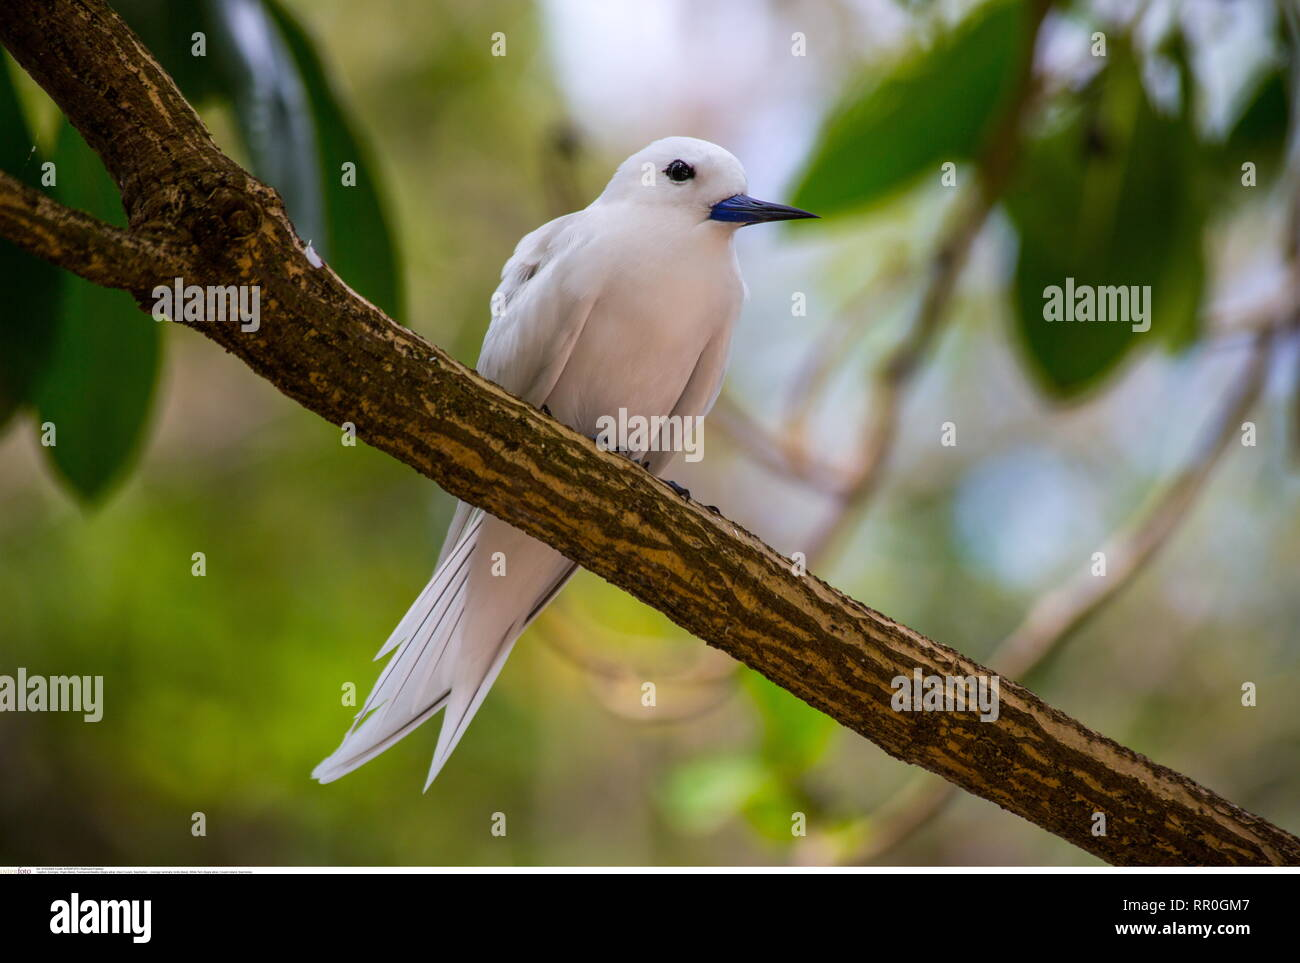 zoology / animals, birds (Aves), White Tern (Gygis alba), Cousin Island, Seychelles, Additional-Rights-Clearance-Info-Not-Available - Stock Image